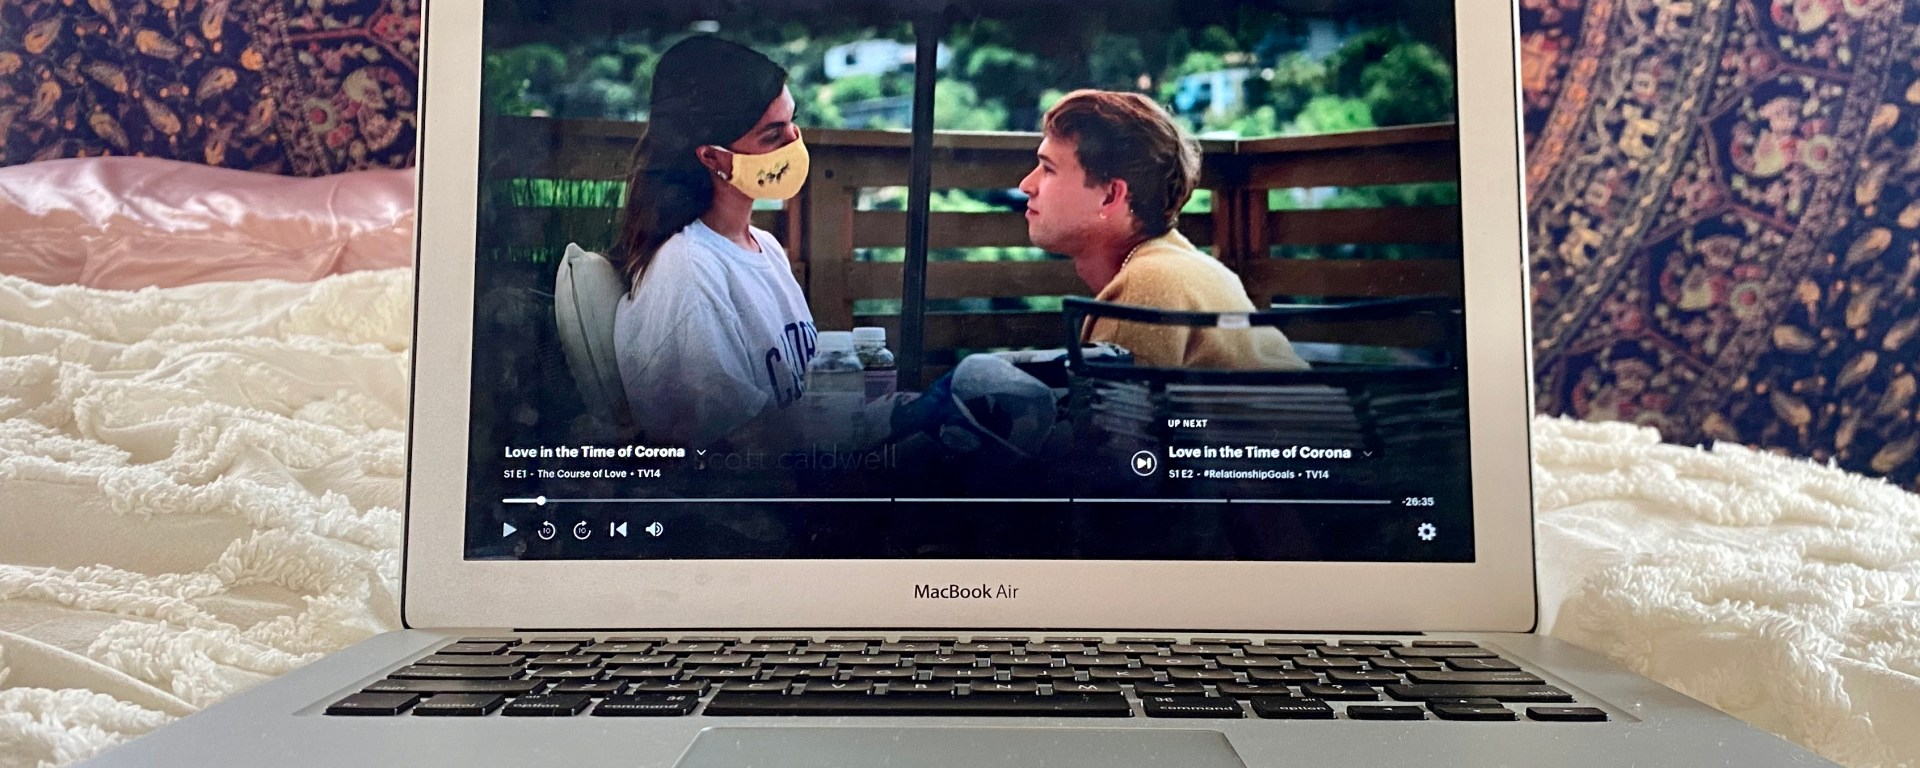 picture of a computer screen displaying episode 1 of Love in the Time of Corona